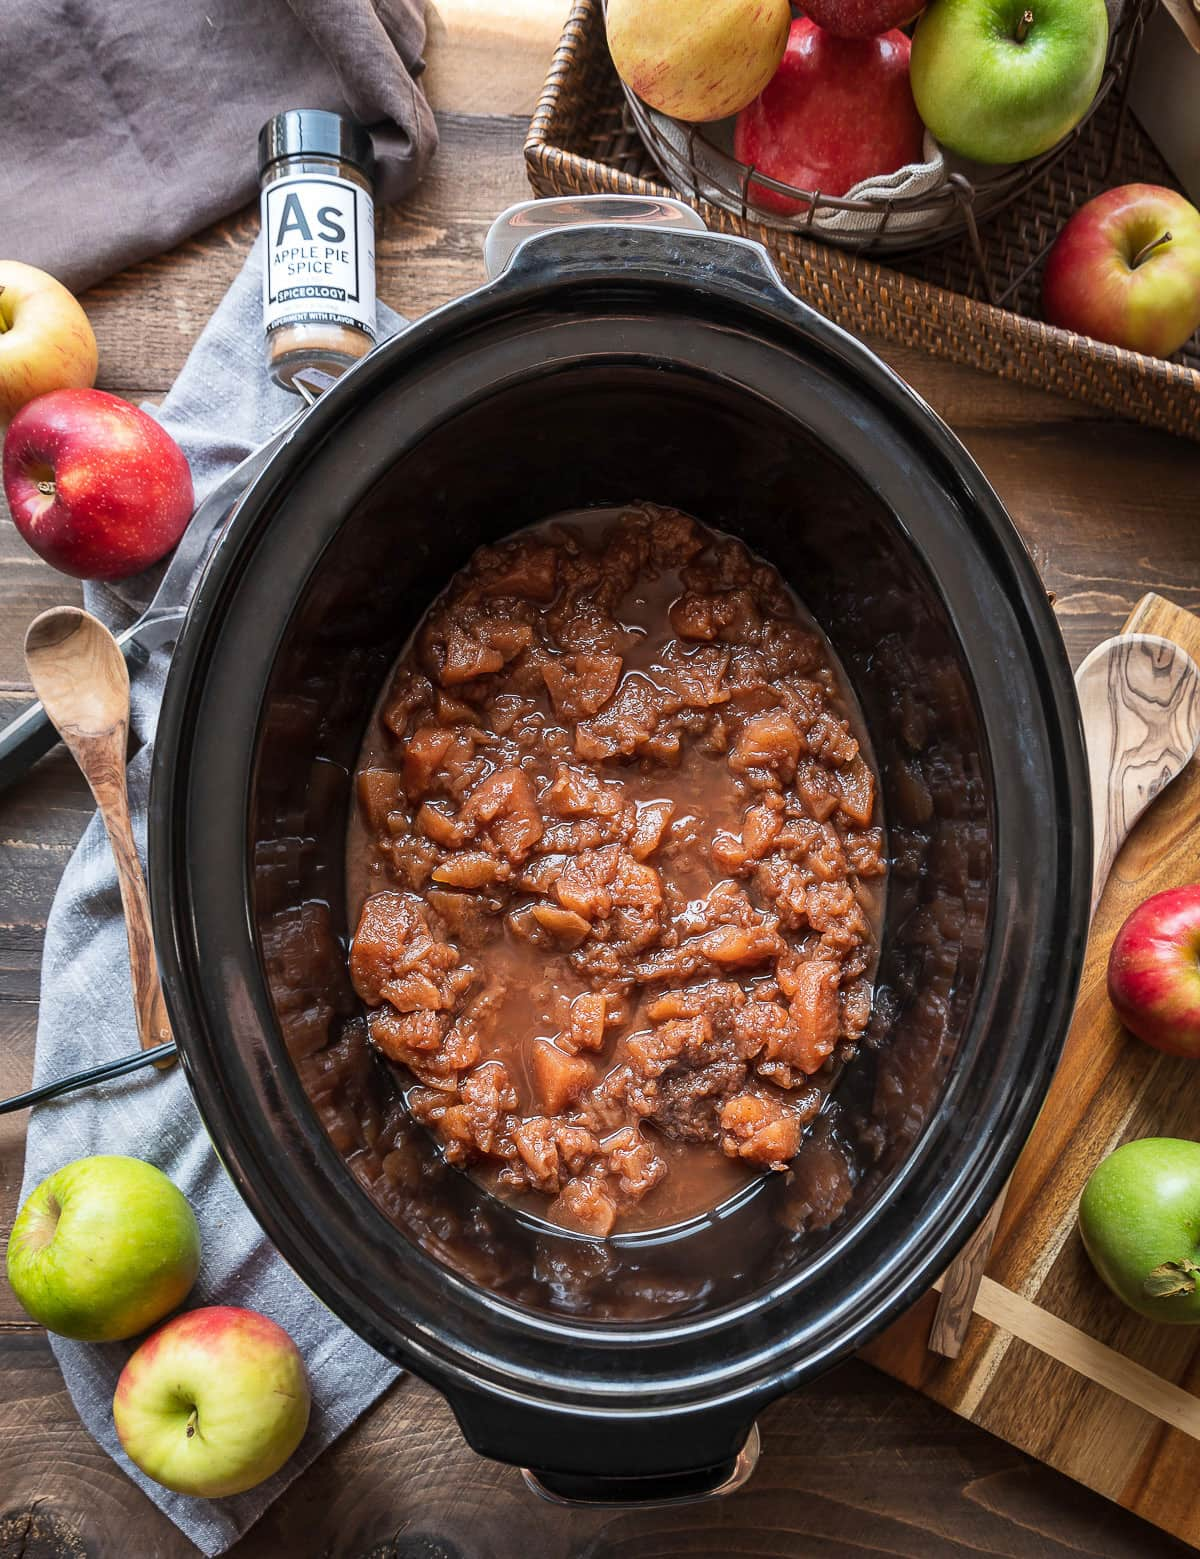 cooked apples in a slow cooker jar of spice whole apples with apples in a basket